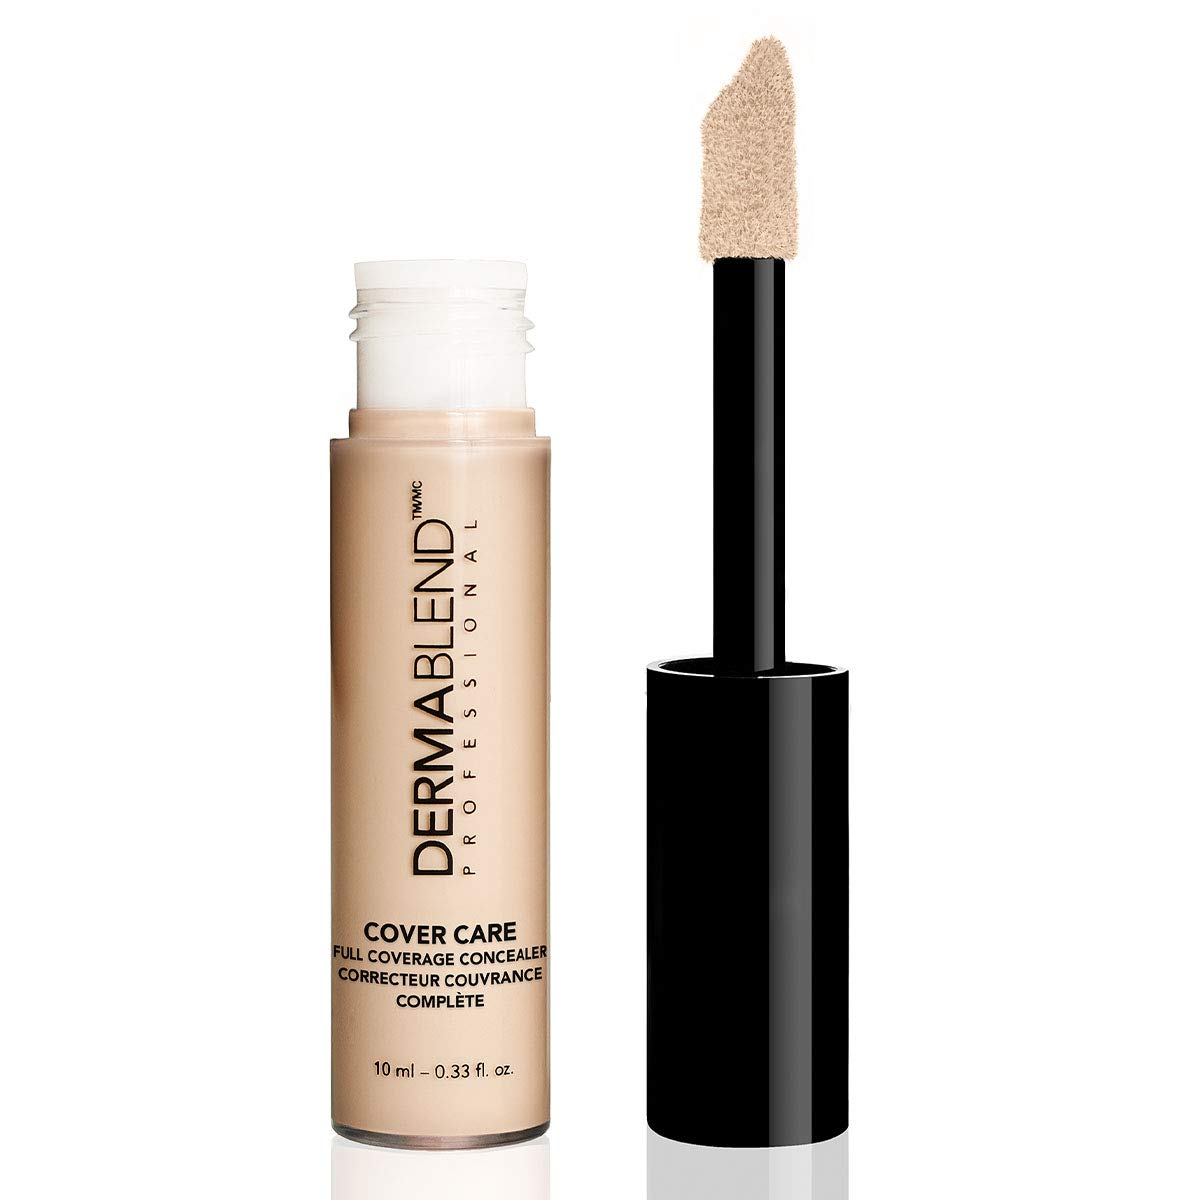 Dermablend Cover Care Concealer, Full Coverage Concealer Makeup and Corrector for Under Eye Dark Circles, Acne & Blemishes, 24-Hr Hydration, Matte Finish, XL Applicator